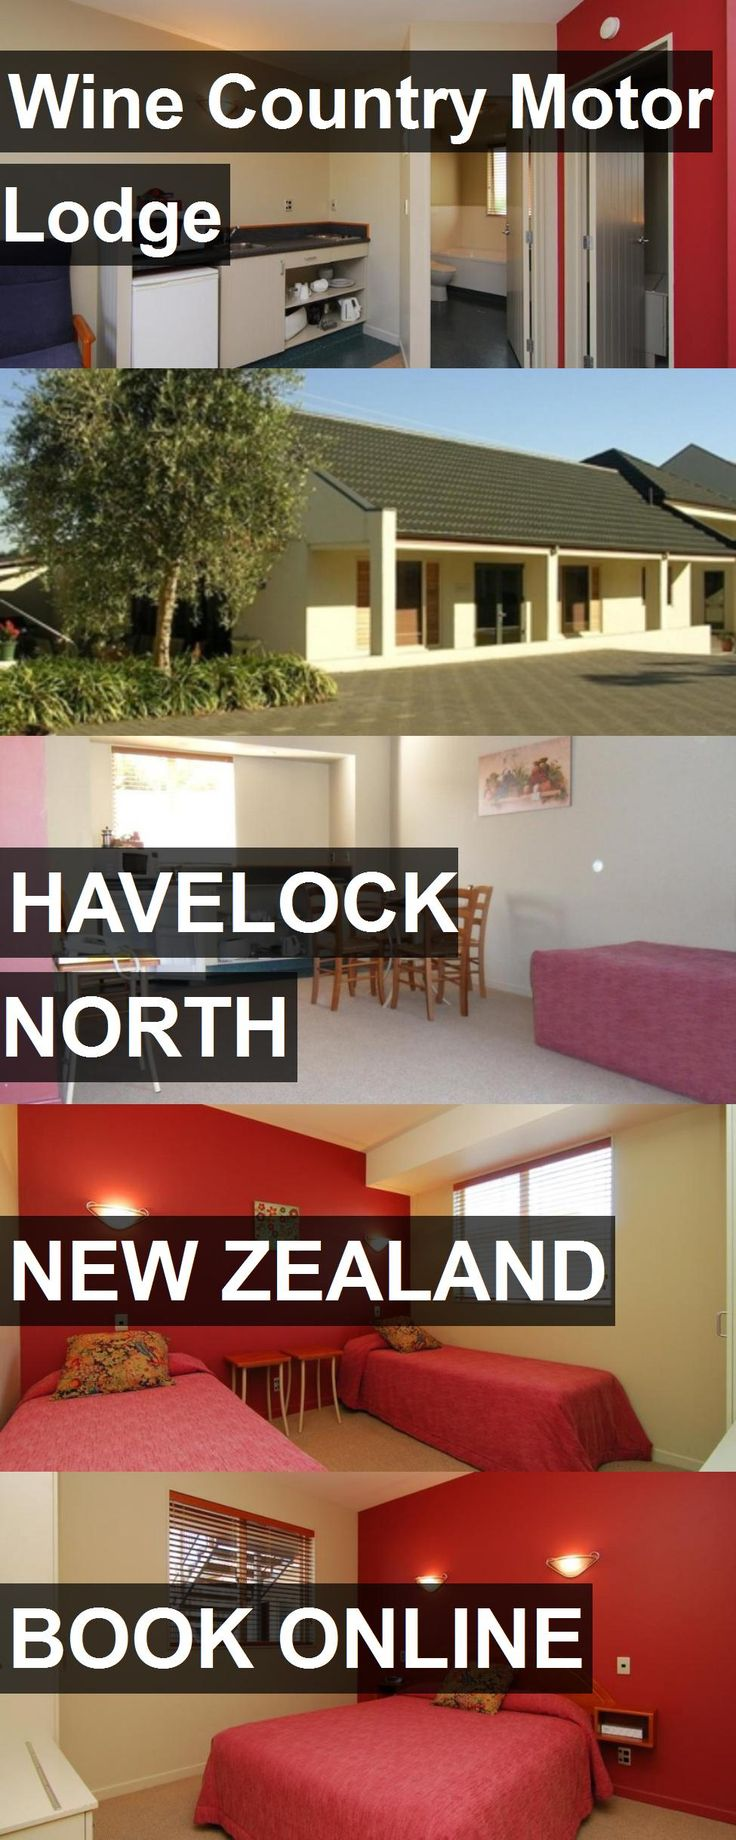 Hotel Wine Country Motor Lodge in Havelock North, New Zealand. For more information, photos, reviews and best prices please follow the link. #NewZealand #HavelockNorth #WineCountryMotorLodge #hotel #travel #vacation